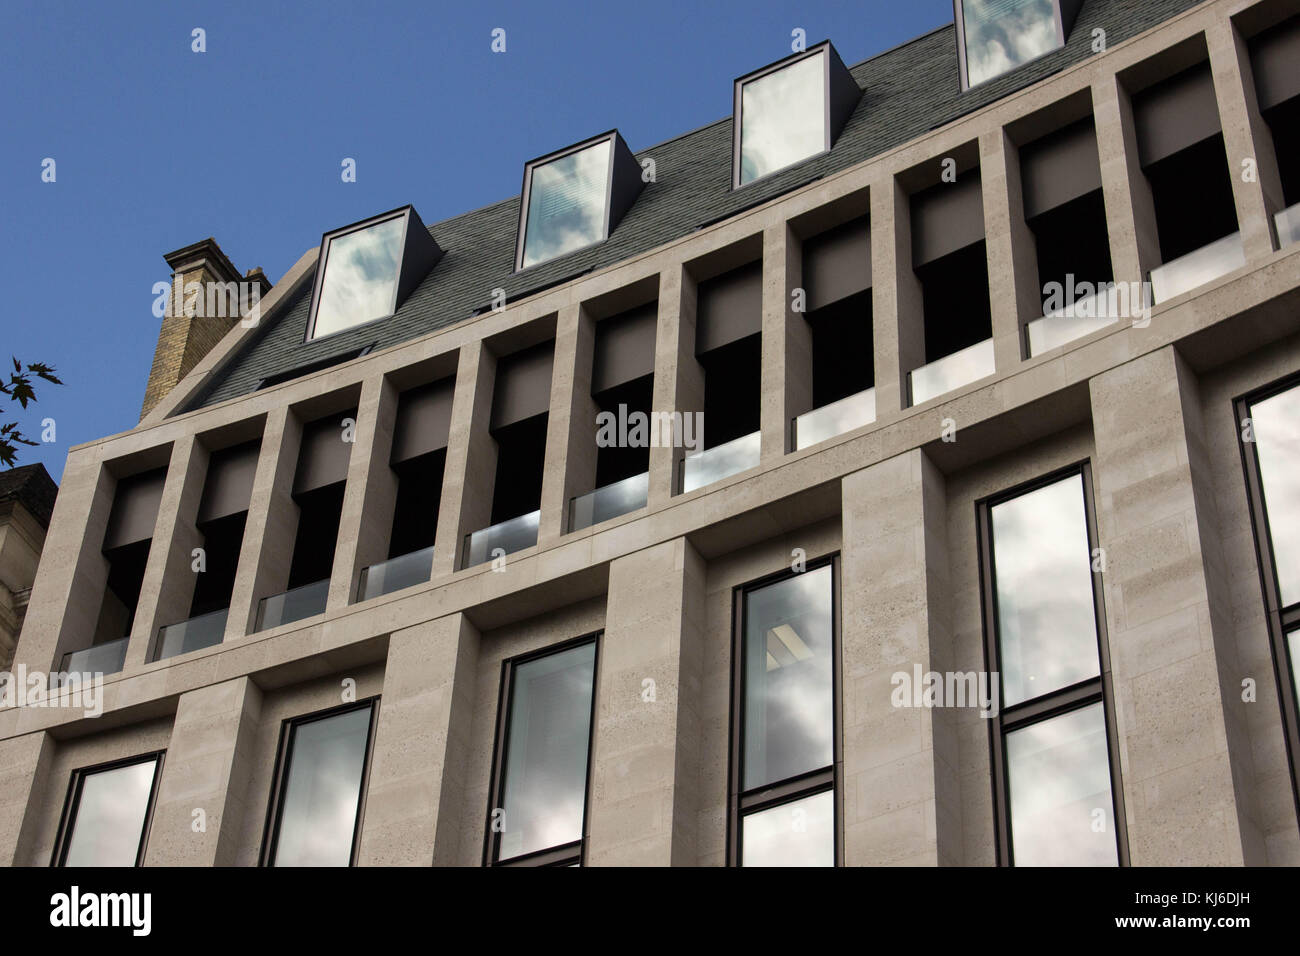 New building in the City of London, on Finsbury Circus 8. Beautiful, simple looking stone facade with windows reflecting - Stock Image